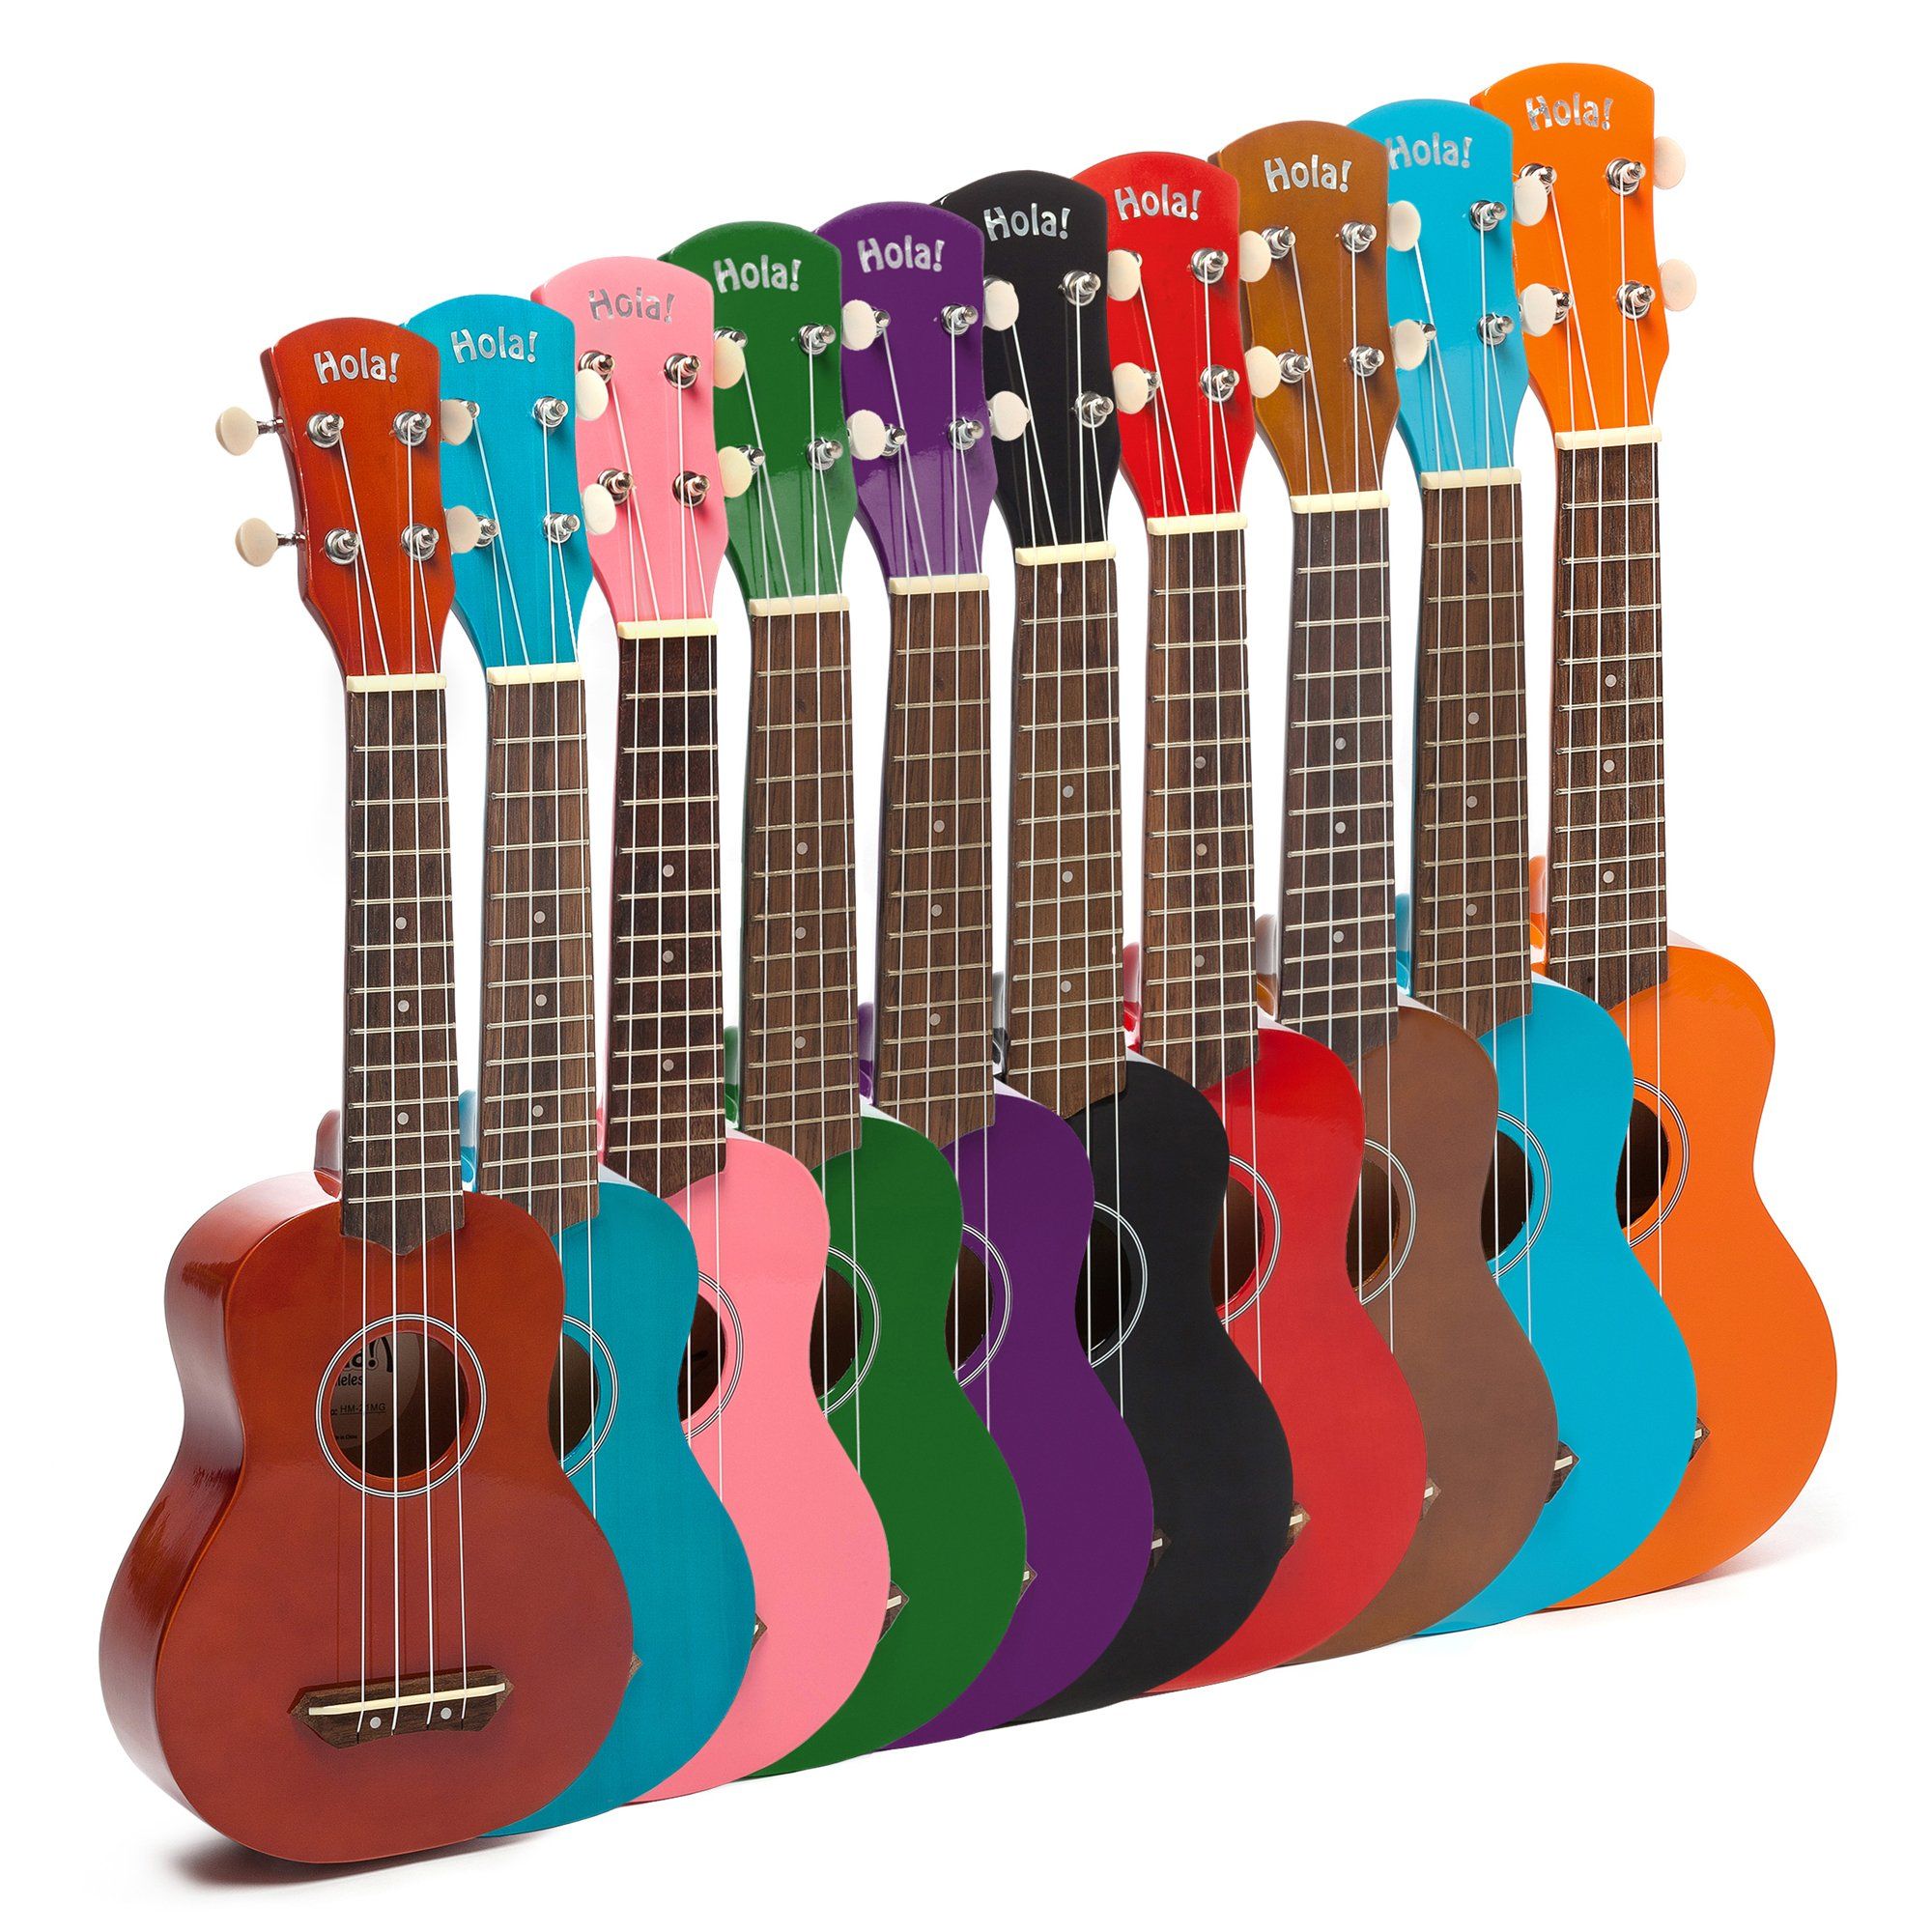 Hola! Music HM-21MG Soprano Ukulele Bundle with Canvas Tote Bag, Strap and Picks, Color Series - Mahogany by Hola! Music (Image #8)